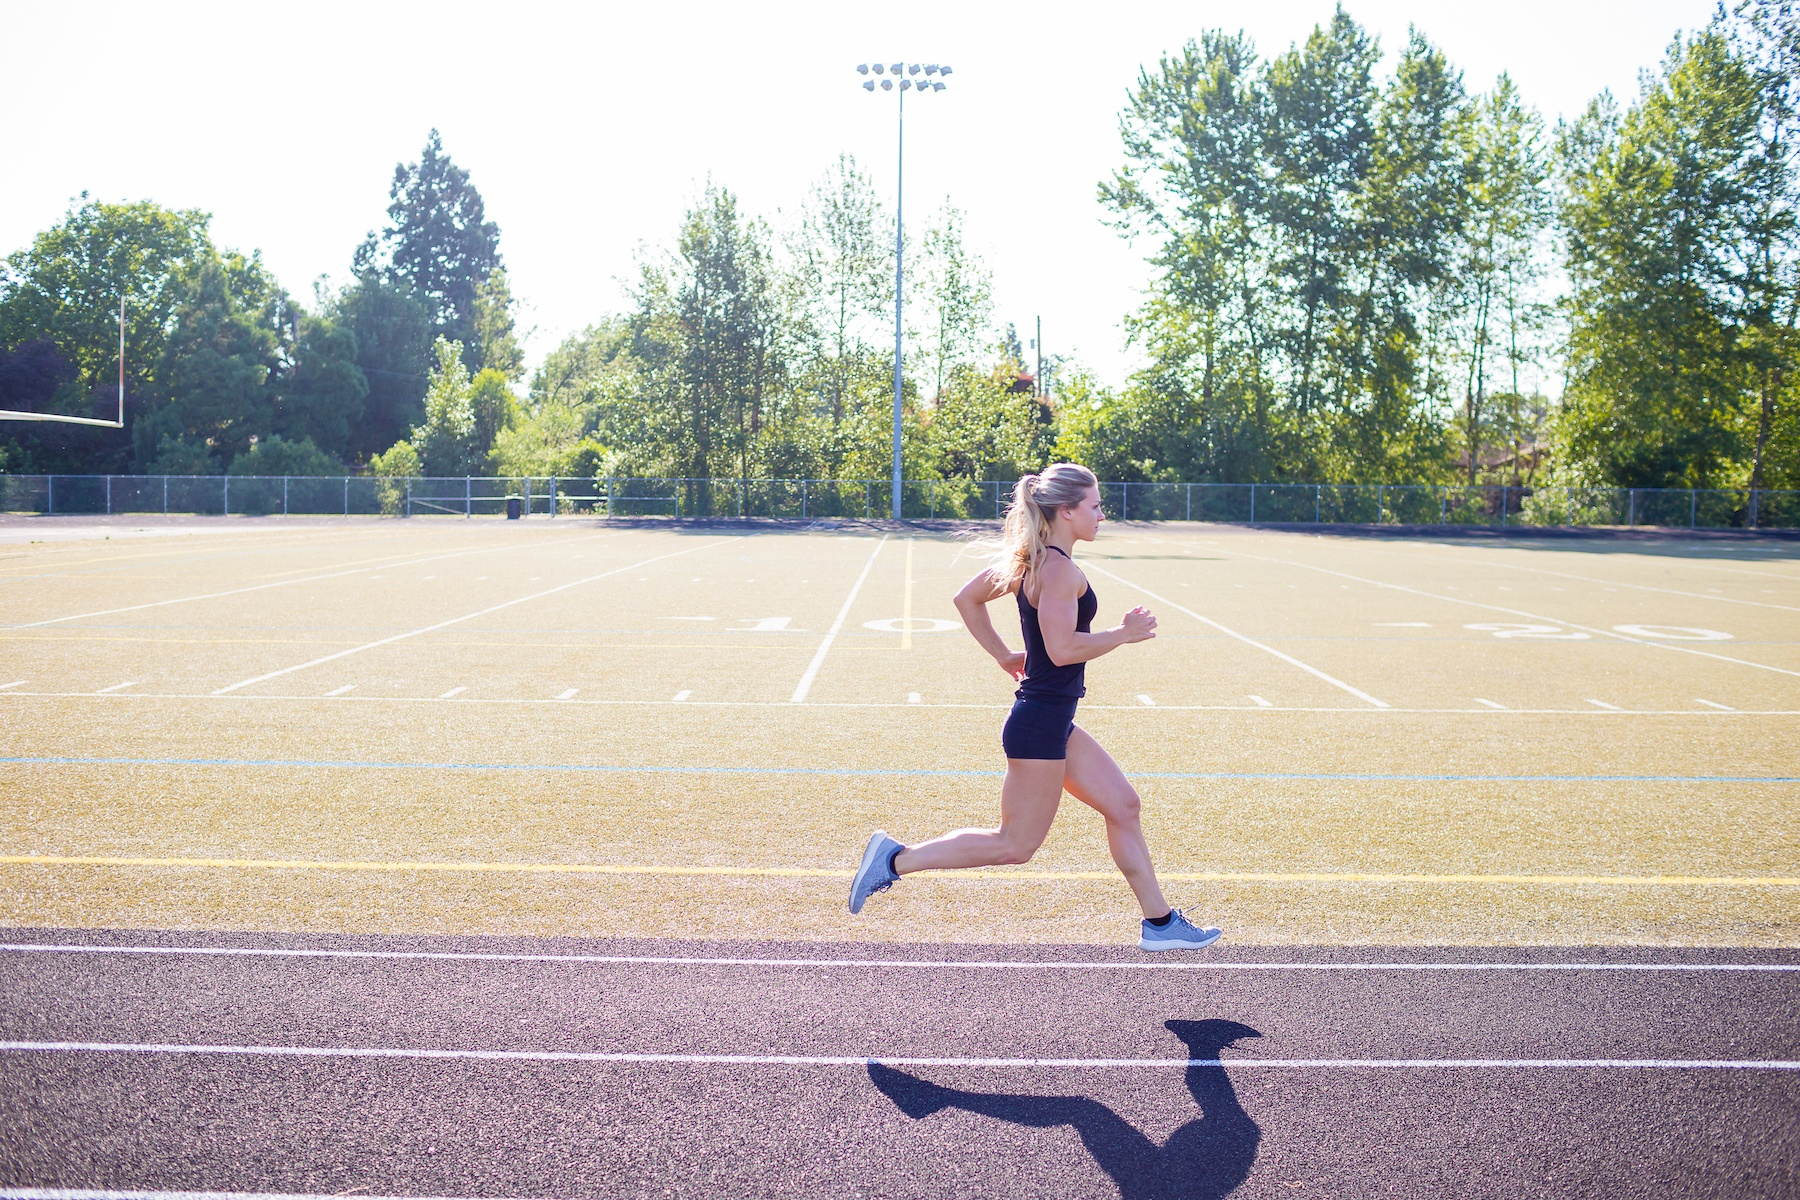 Female runner performs short sprints while working out on an outdoor track in the summer.